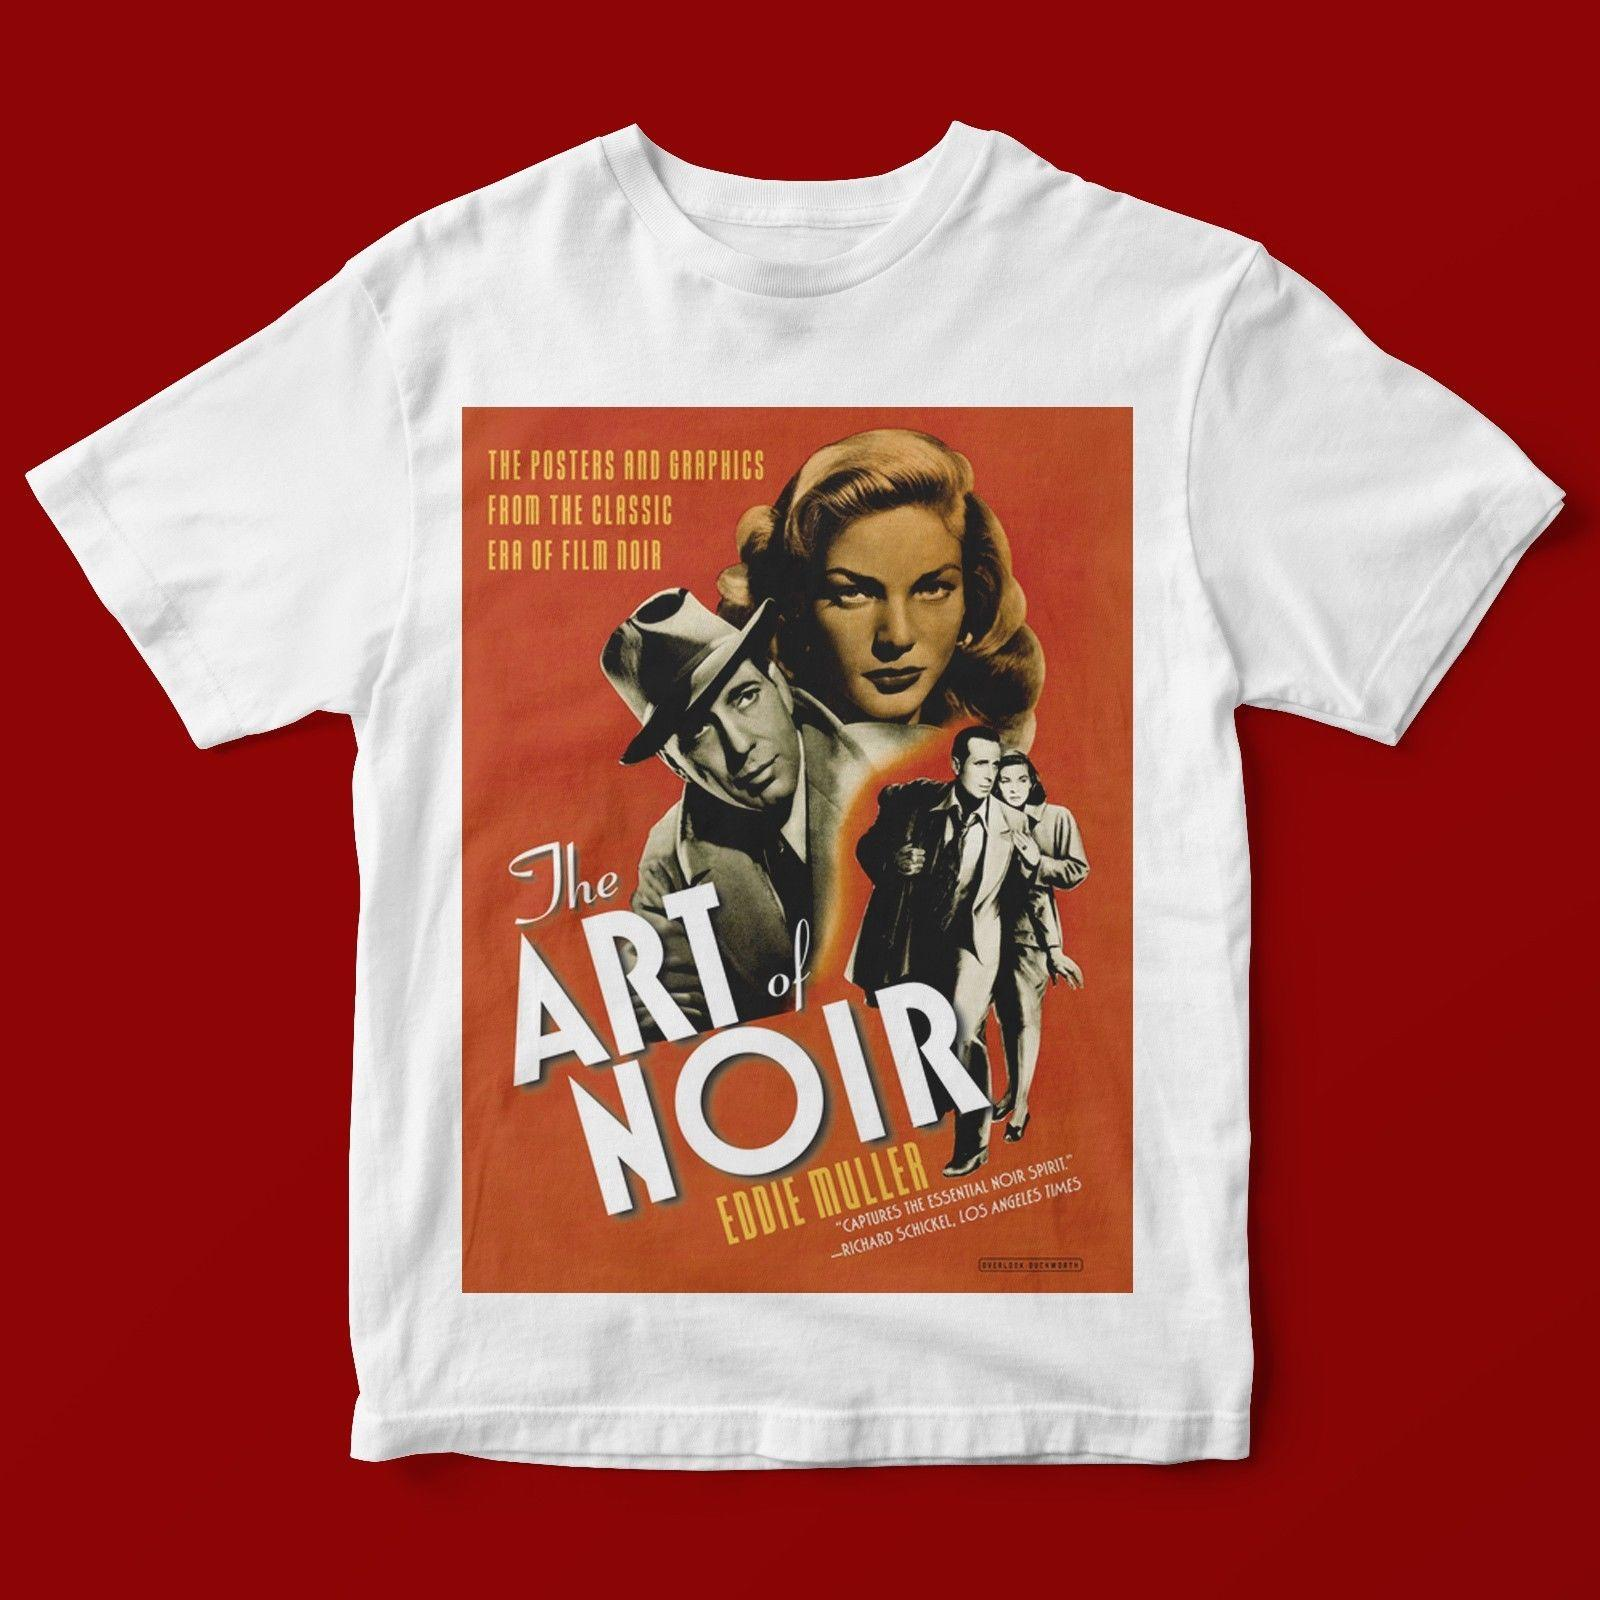 58fb3407ca1 ART NOIR T SHIRT UNISEX 1021 Short Sleeve Plus Size T Shirt Raid Shirt T  Shirts In A Day From Asisccup, $16.24| DHgate.Com